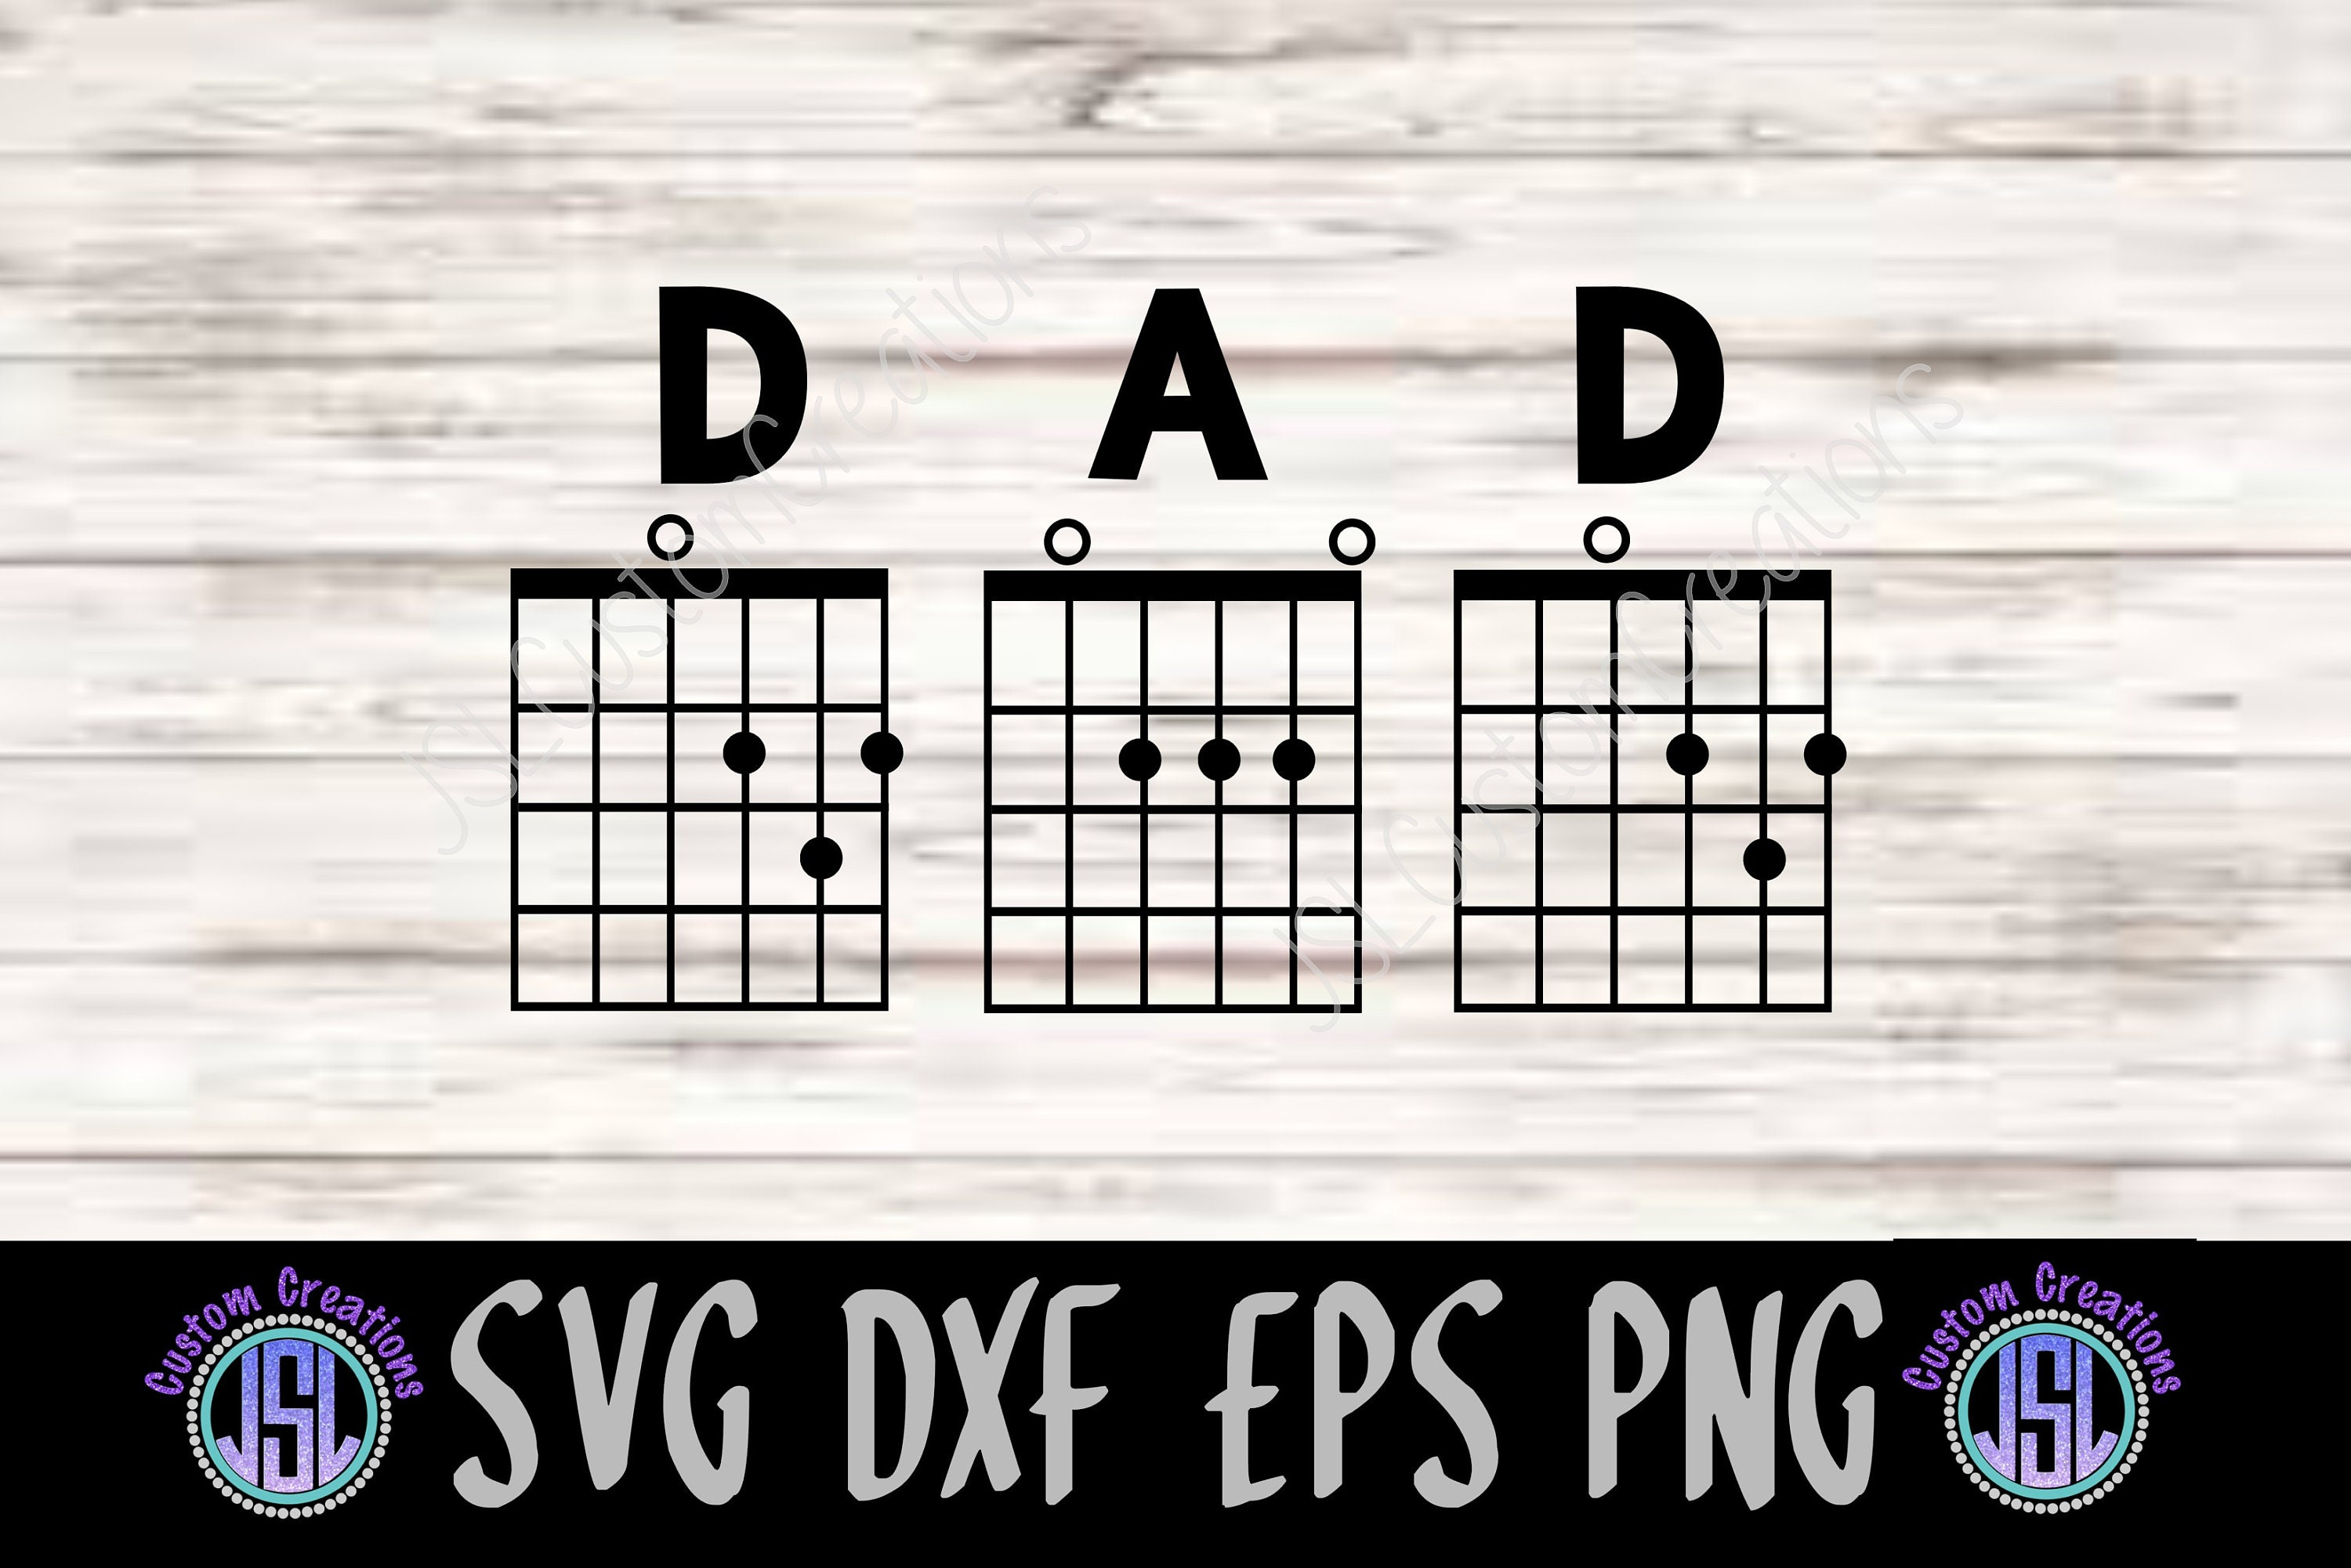 Dad Guitar Chords Svg Eps Dxf Png Cut File For Silhouette Etsy